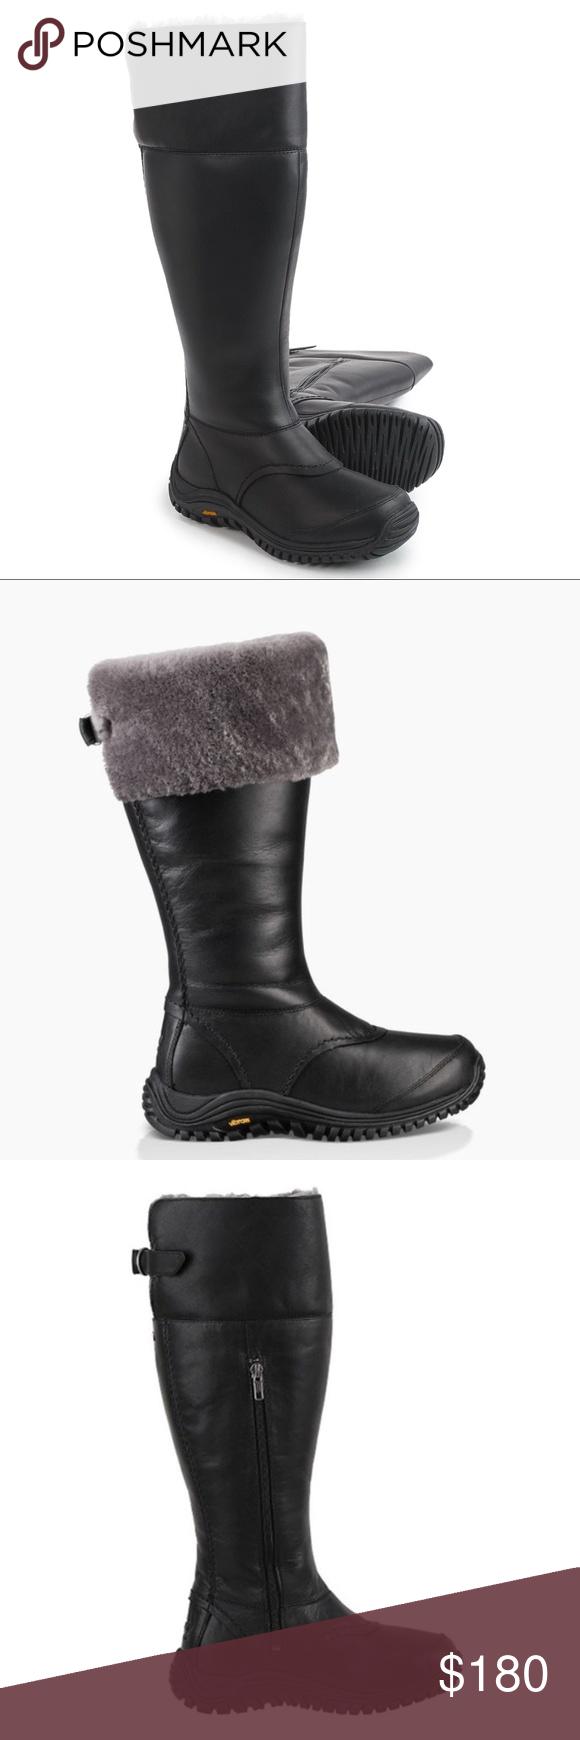 0e5176d39db 💦 NEW UGG®️ 💦 Waterproof Miko Tall Snow Boots NWT - Slip your ...